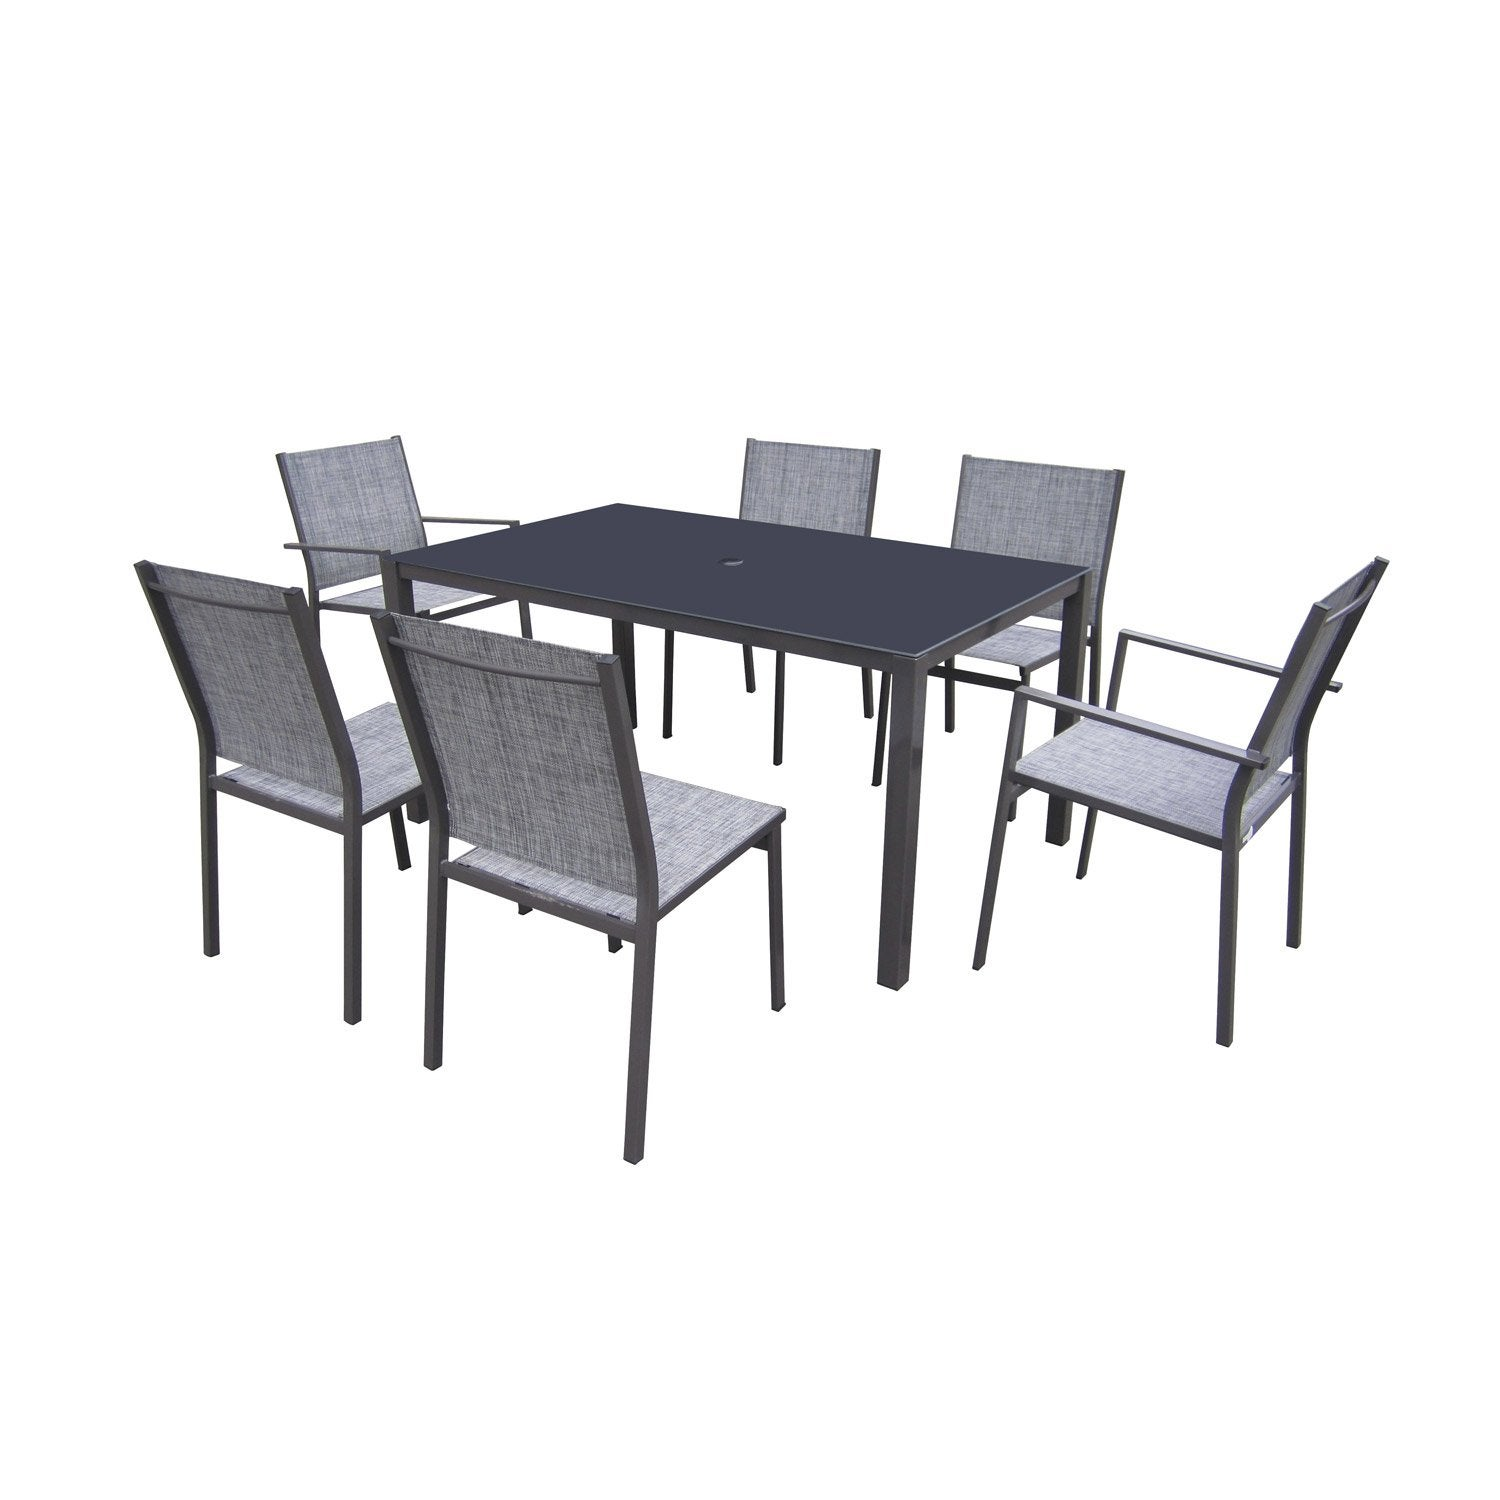 Salon de jardin denver acier gris anthracite 1 table 4 - Salons de jardin leroy merlin ...